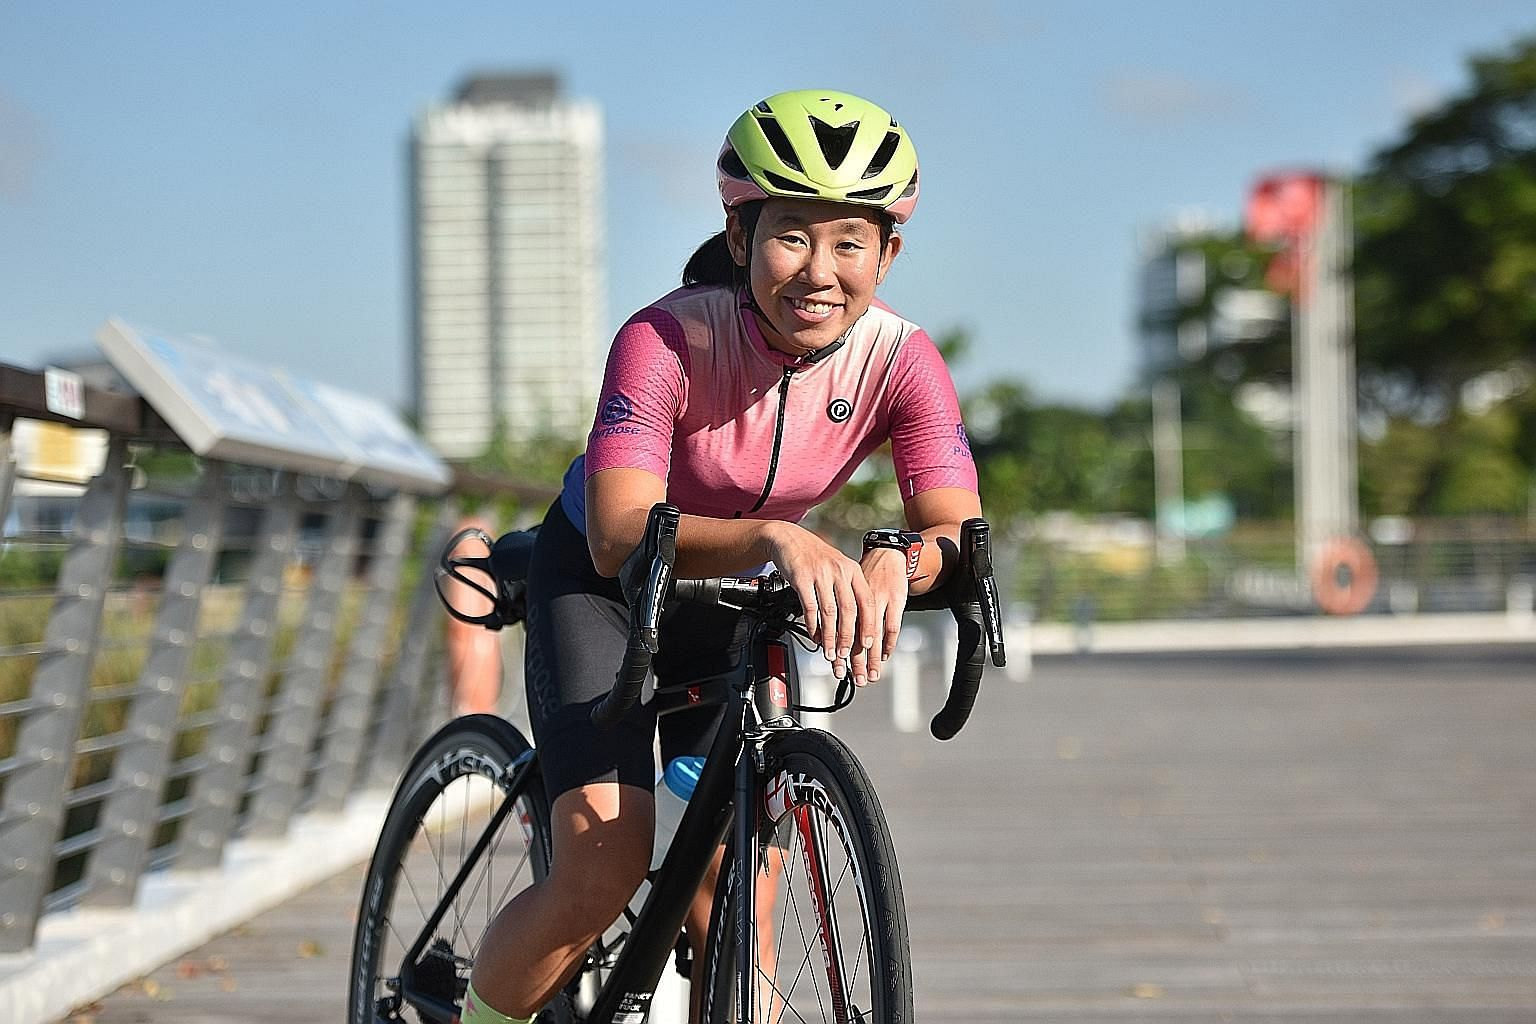 Charlene Tang, 25, cycling along the Kallang River. She will take part in OCBC Cycle's The Straits Times Ride for the first time on May 10. ST PHOTO: KELLY HUI